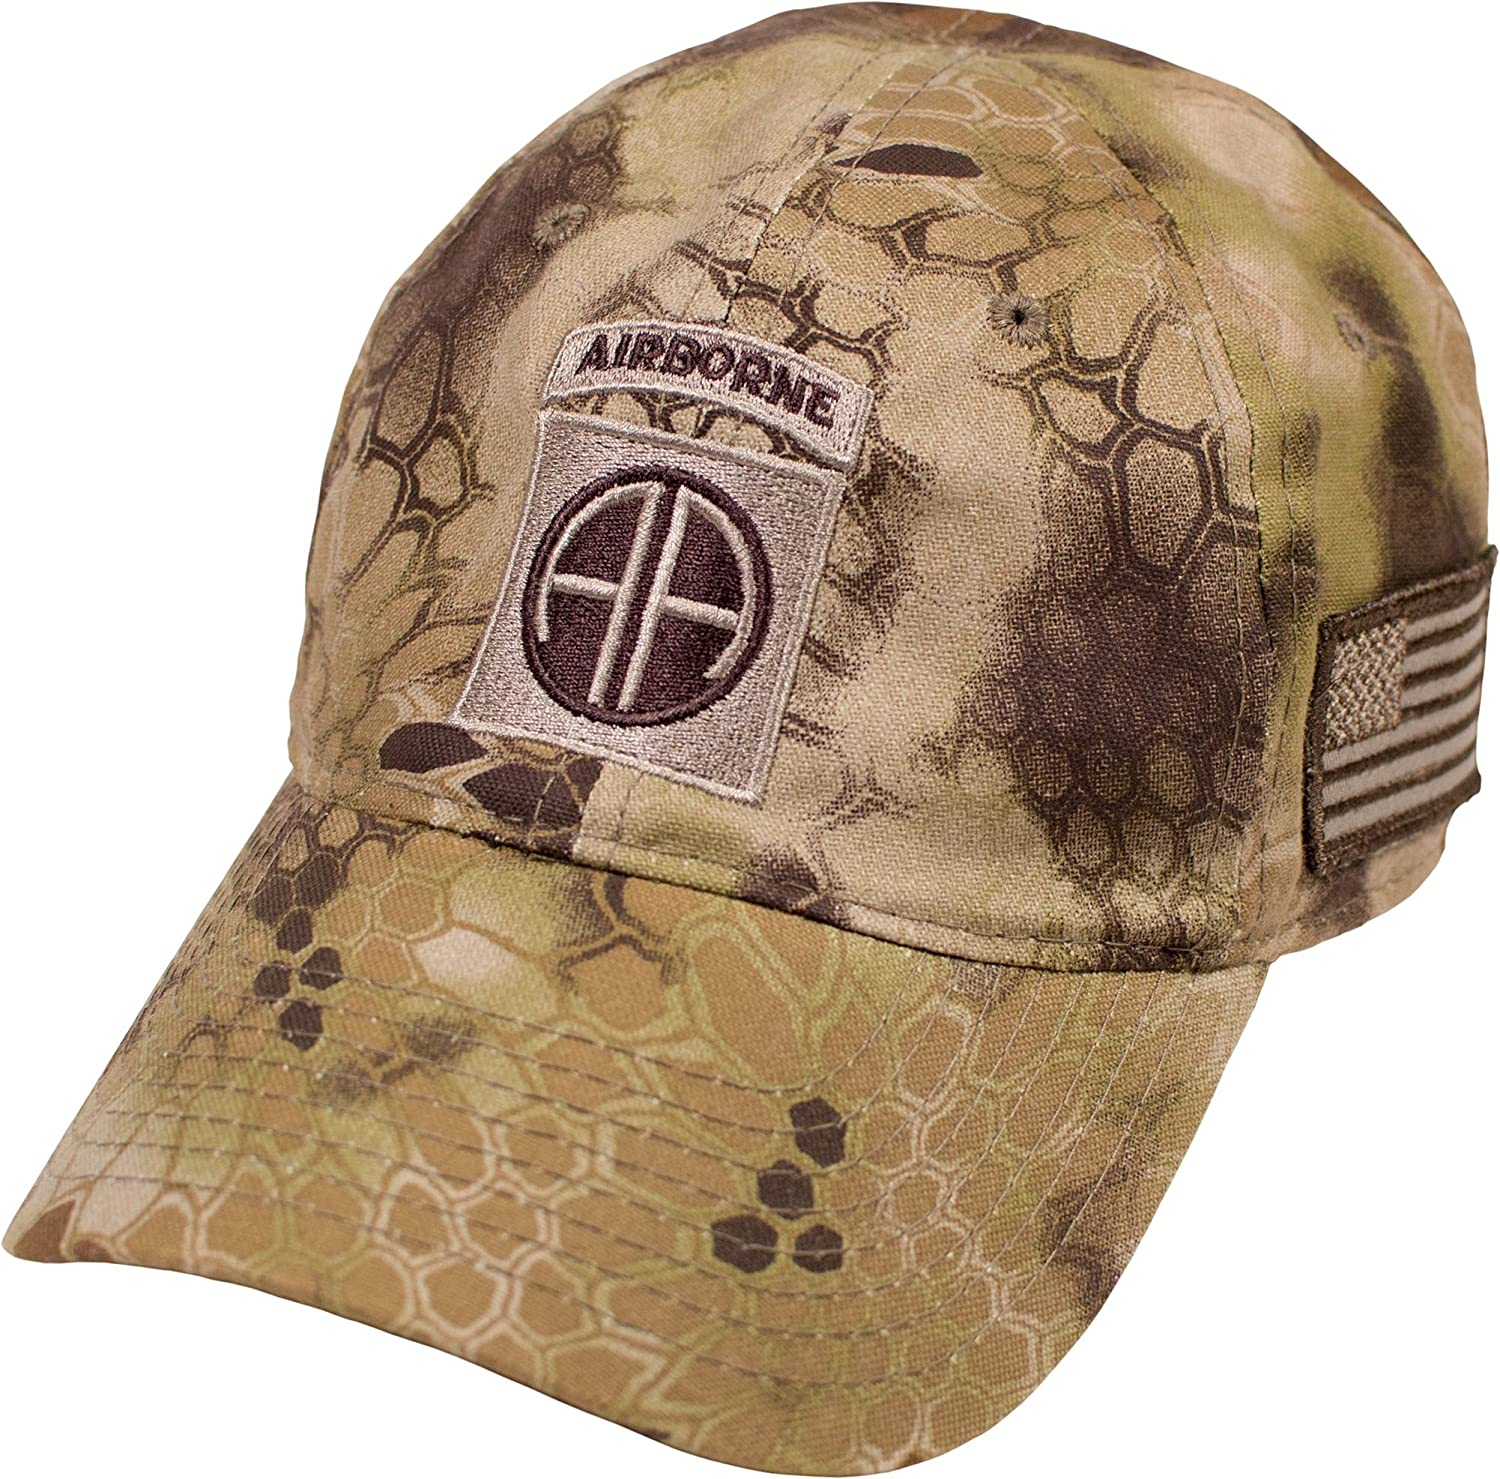 345e3e946ad4b Military Shirts U.S. Army 82nd Airborne Division Kryptek Camo Cap at Amazon  Men s Clothing store